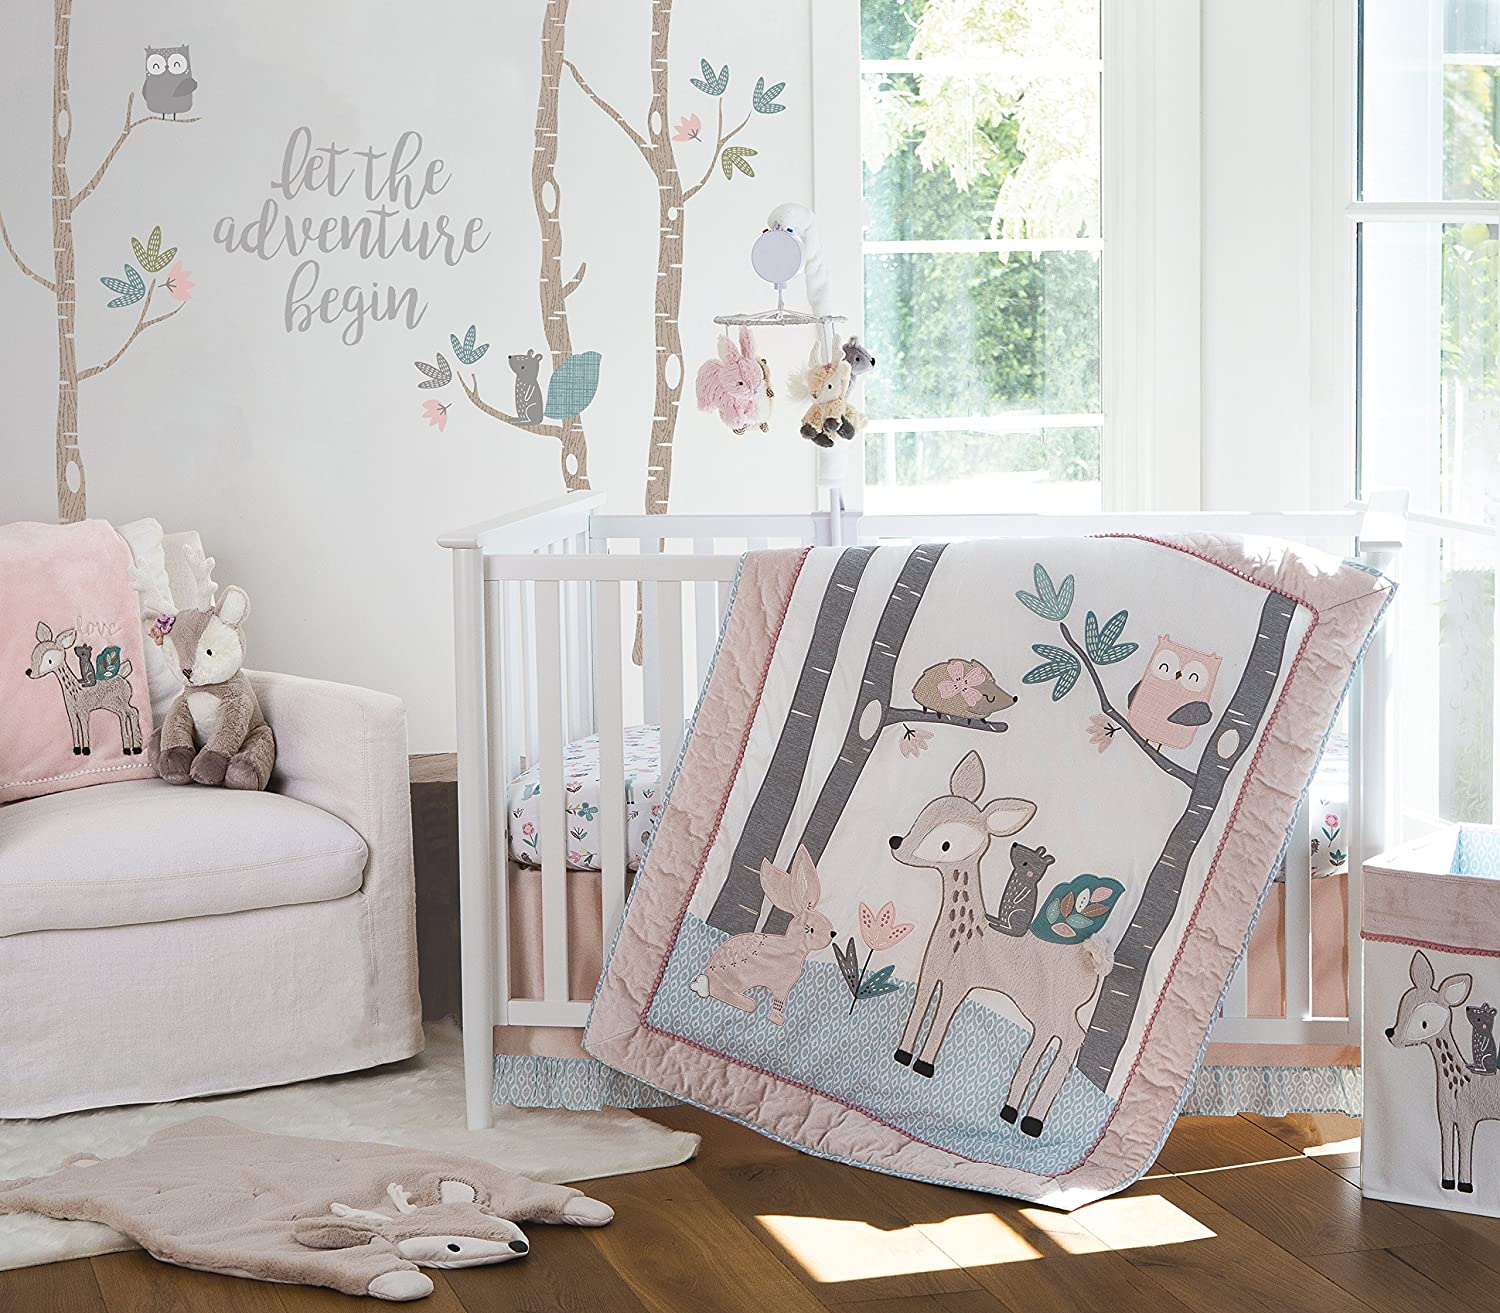 Levtex Baby Everly 5 Piece Bedding Set, Quilt, 100% Cotton Crib Fitted Sheet, Dust Ruffle, Diaper Stacker and Large Wall Decals